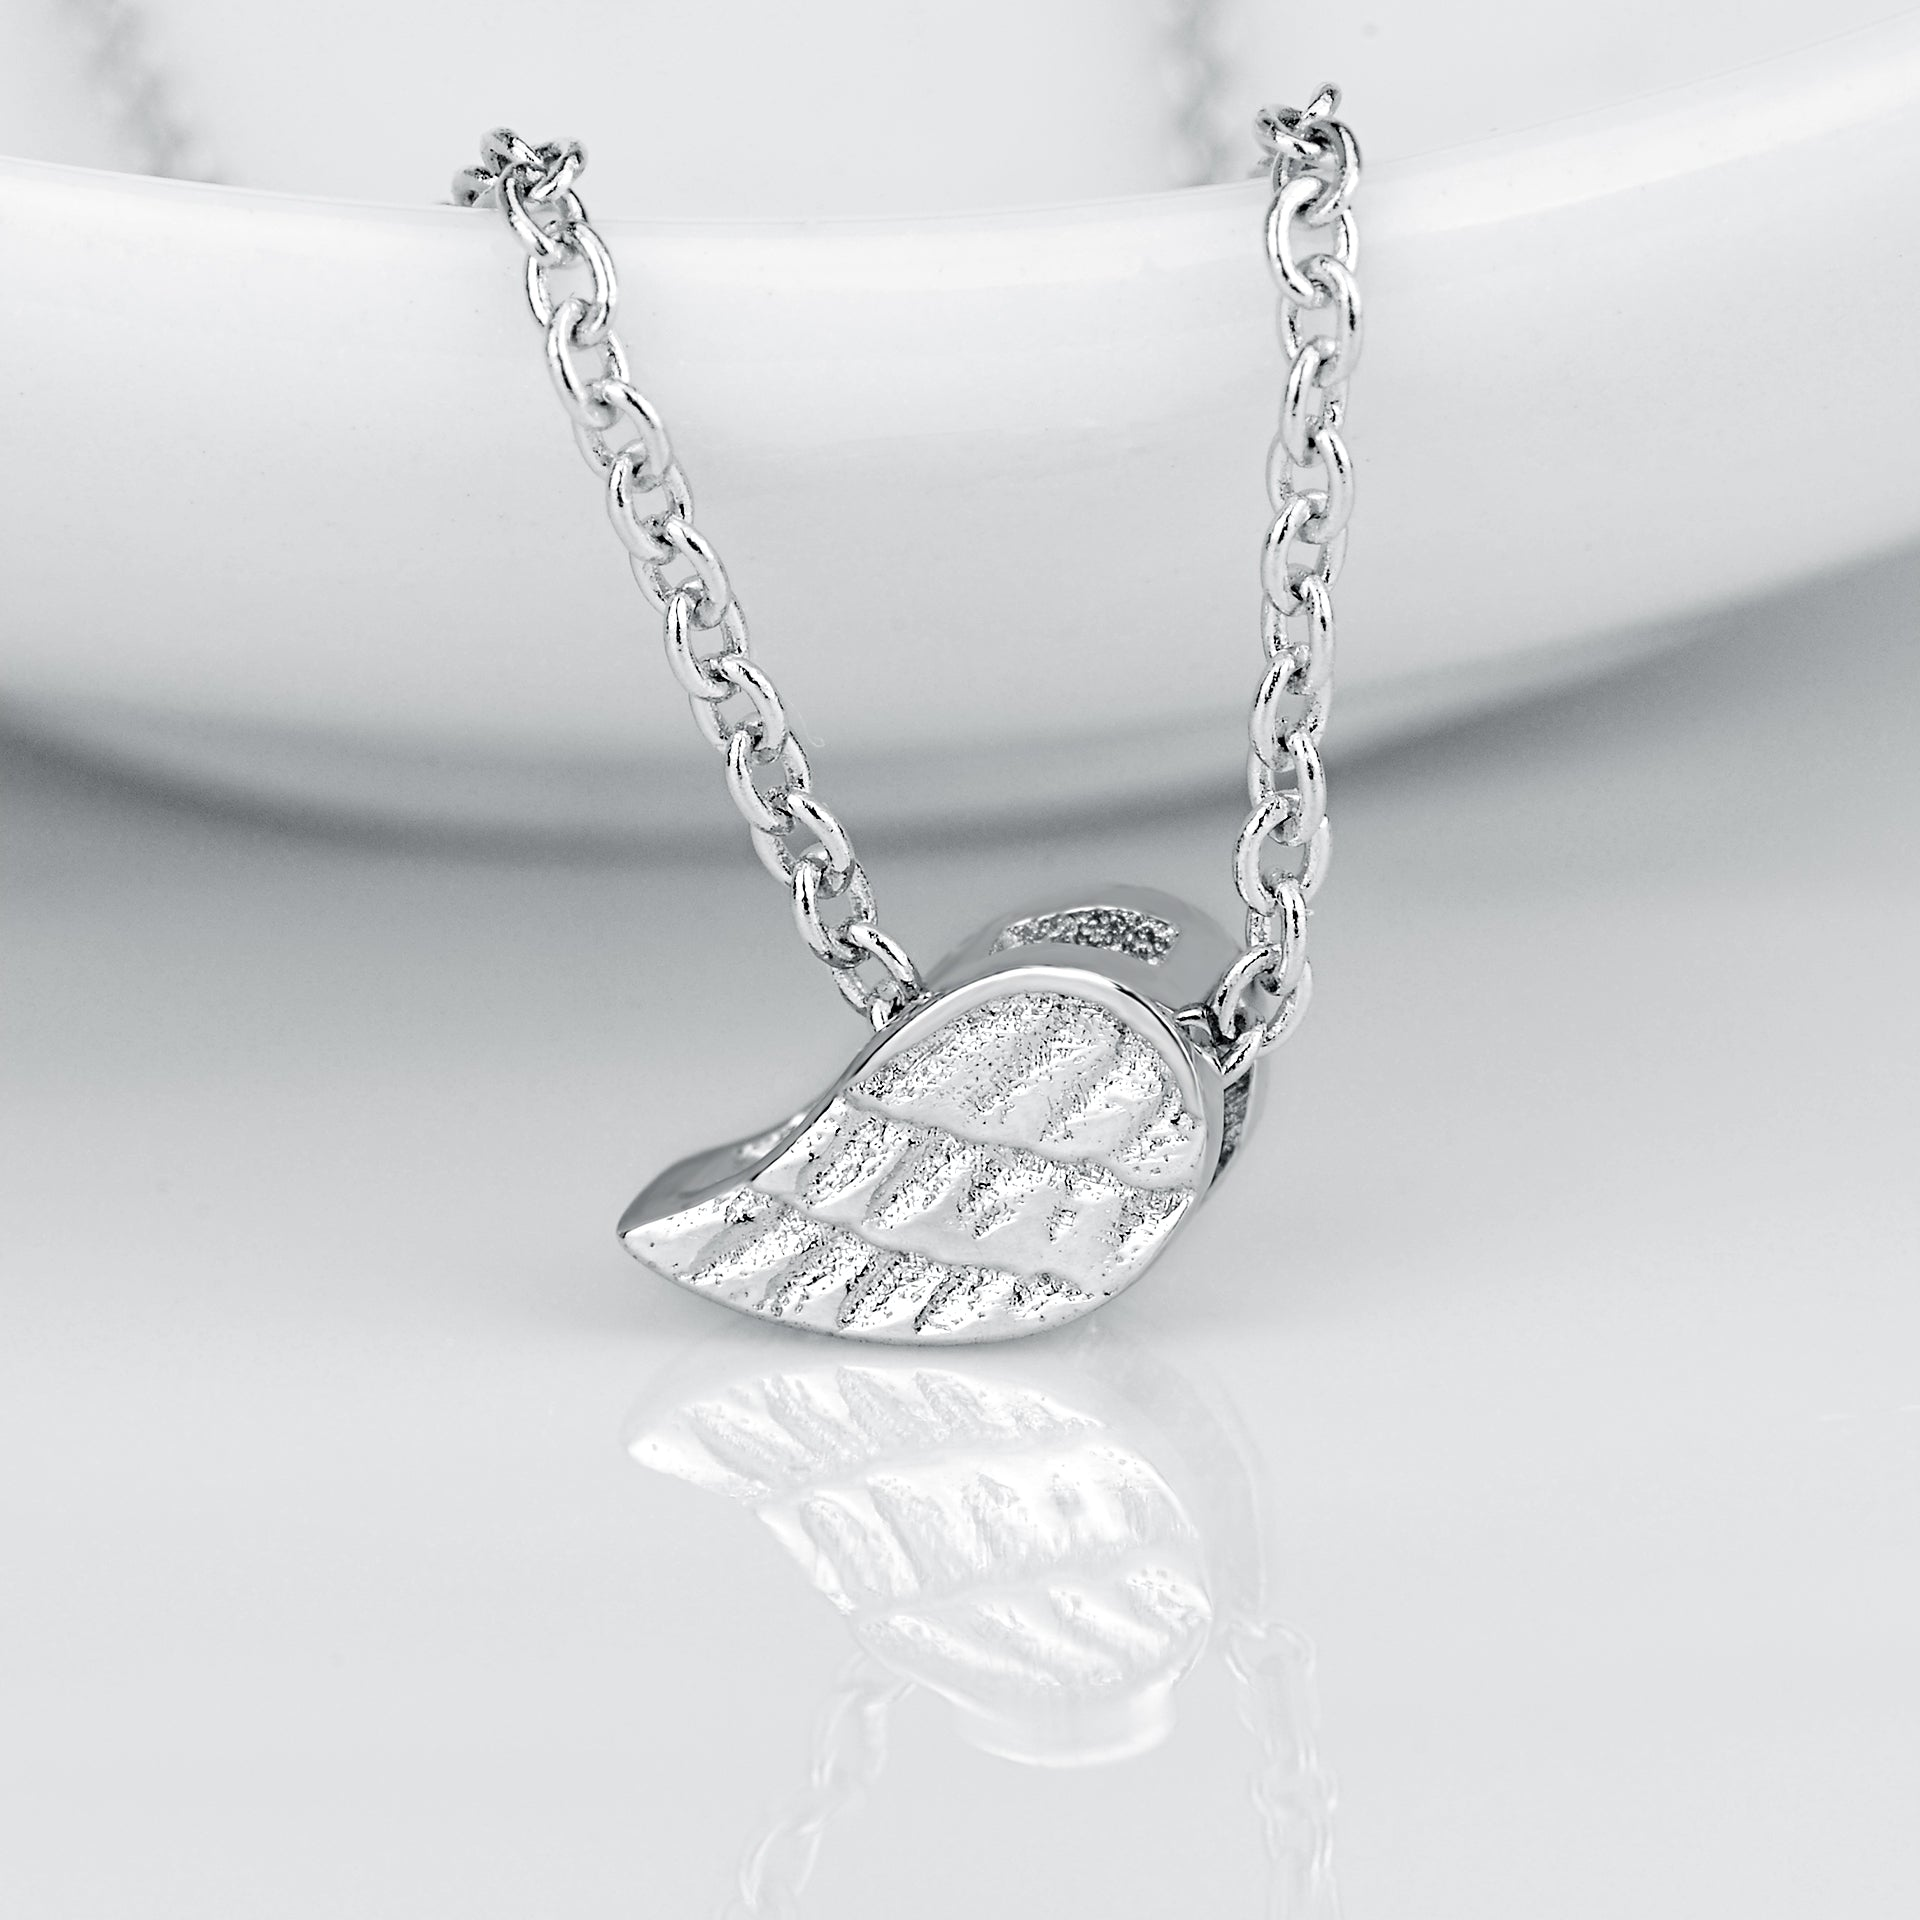 Little Wings Necklace 18 Inch Cable Chain Silver Pendant Necklace